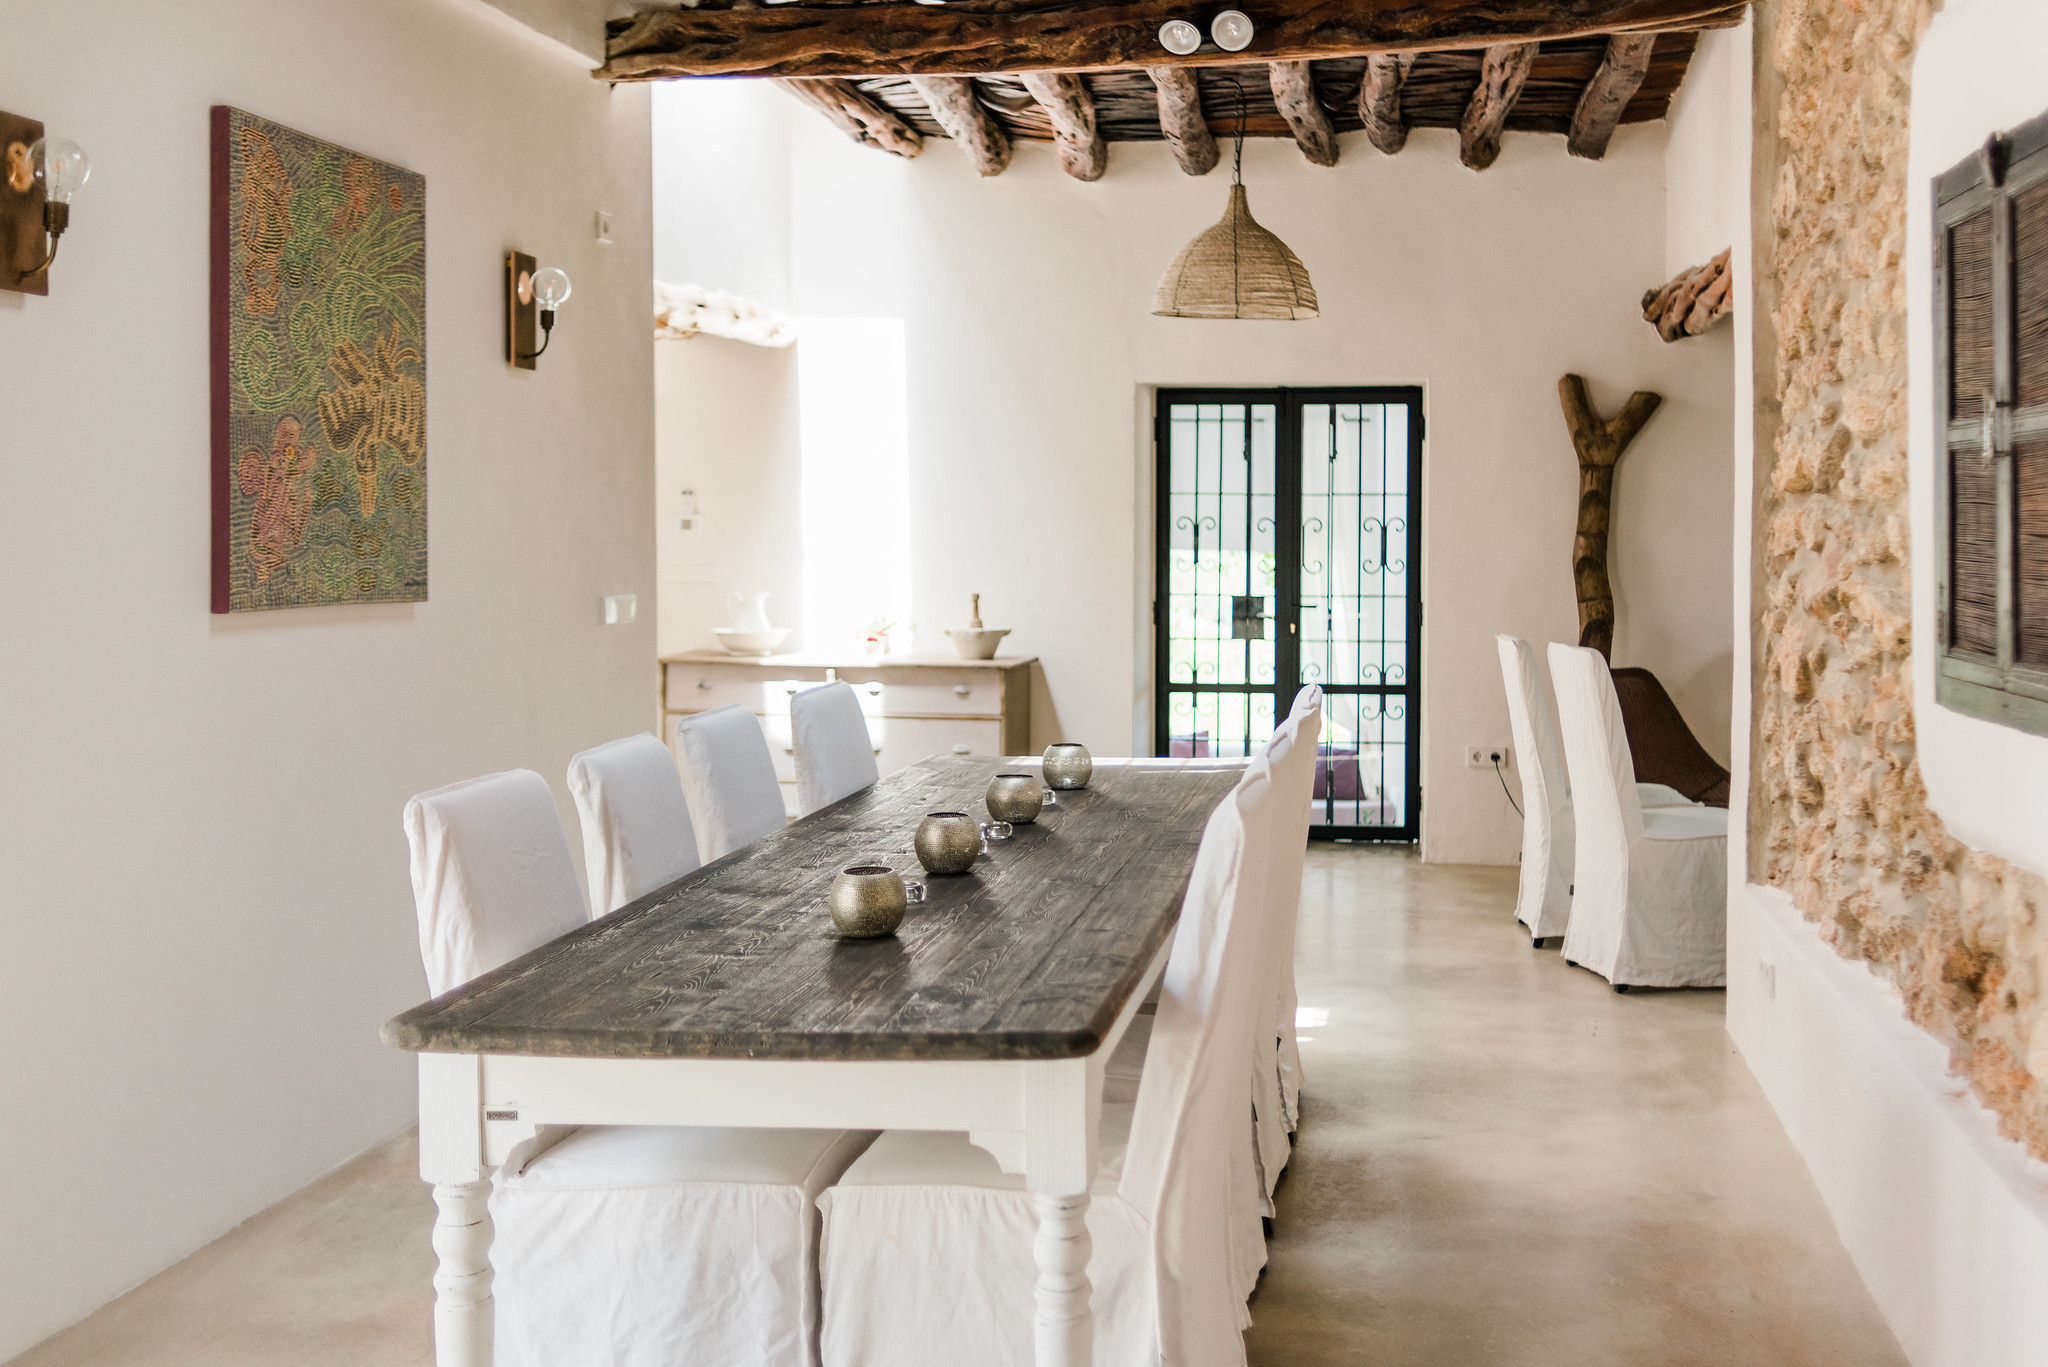 https://www.white-ibiza.com/wp-content/uploads/2020/06/white-ibiza-villas-can-calma-interior-dining.jpg